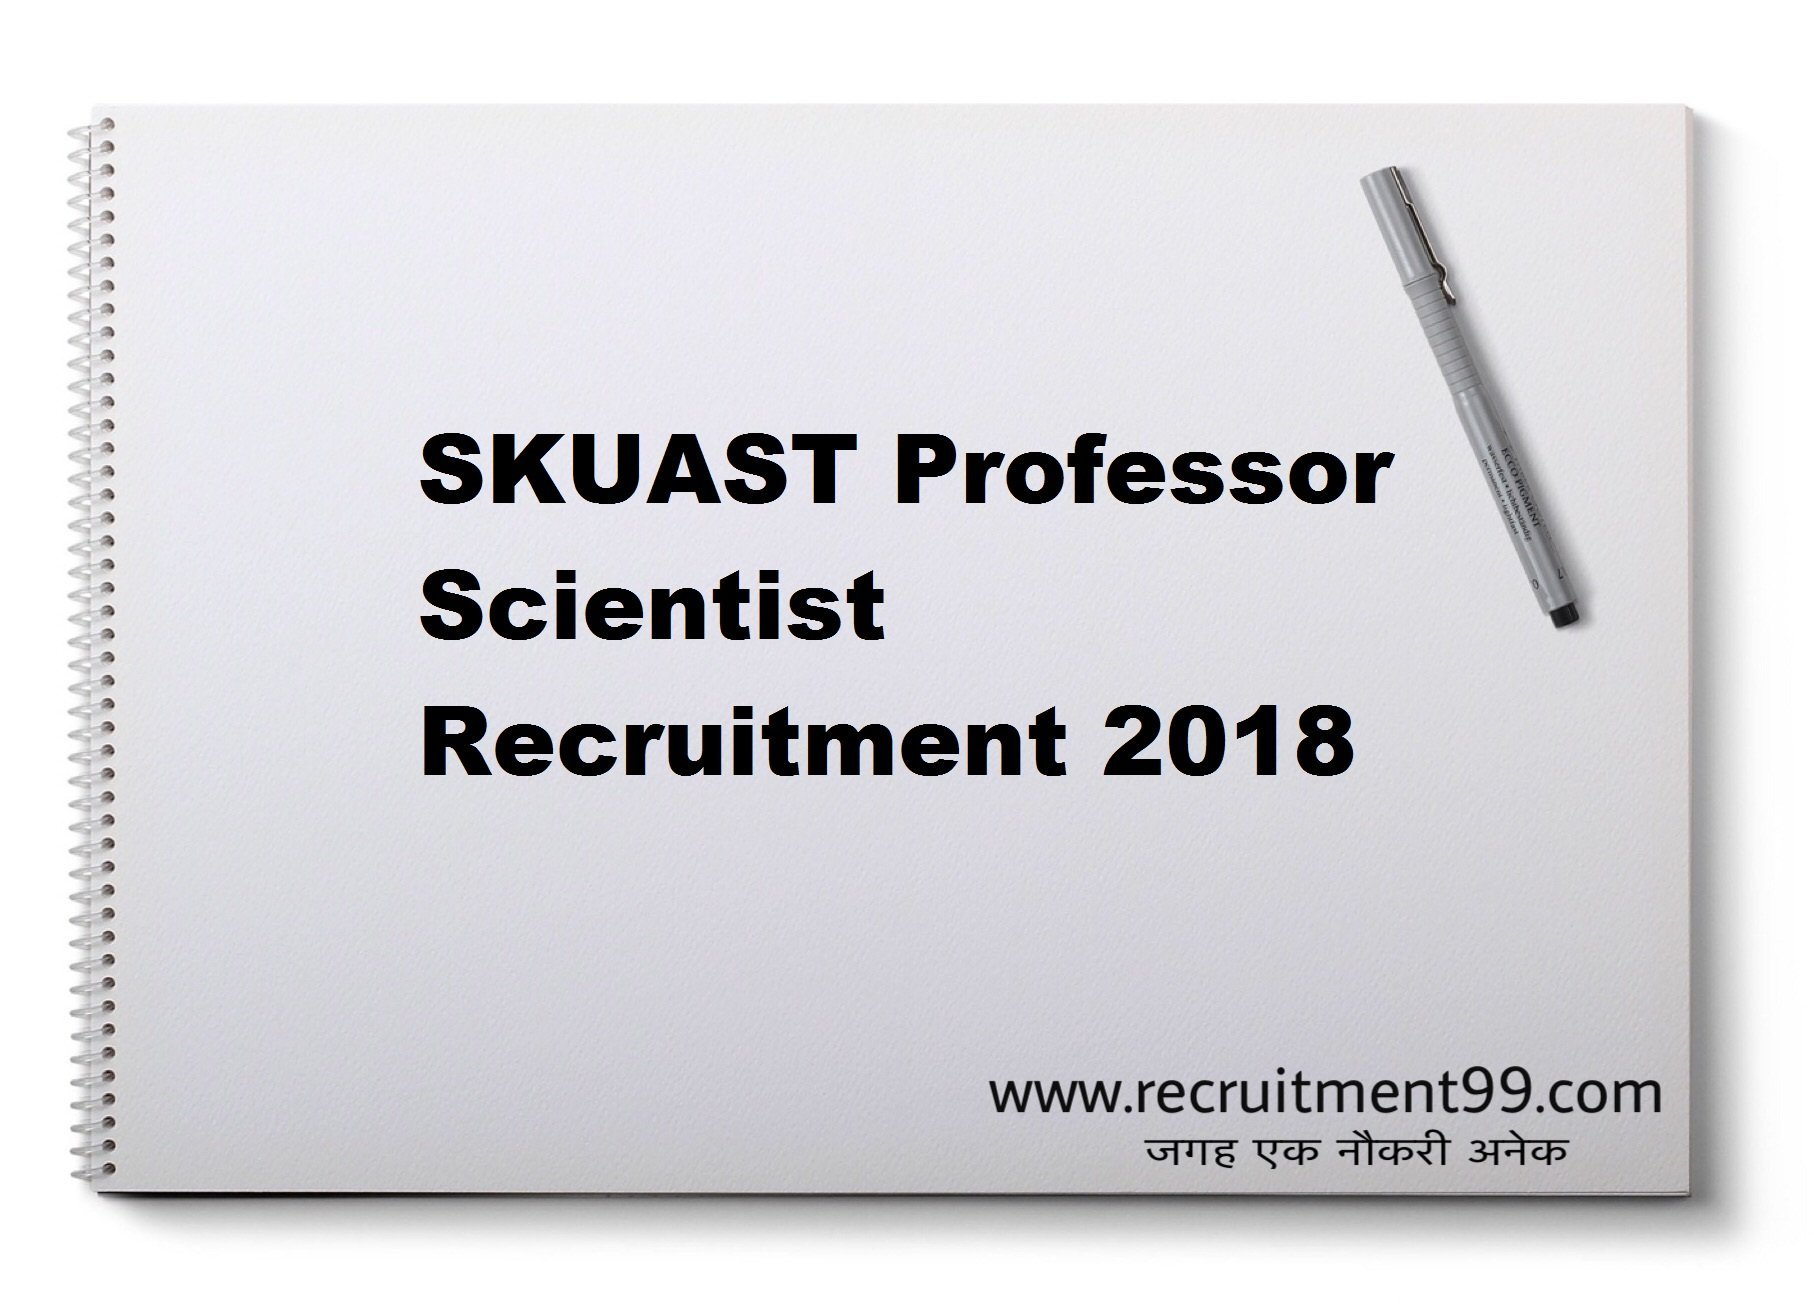 SKUAST Professor Scientist Recruitment Admit Card Result 2018